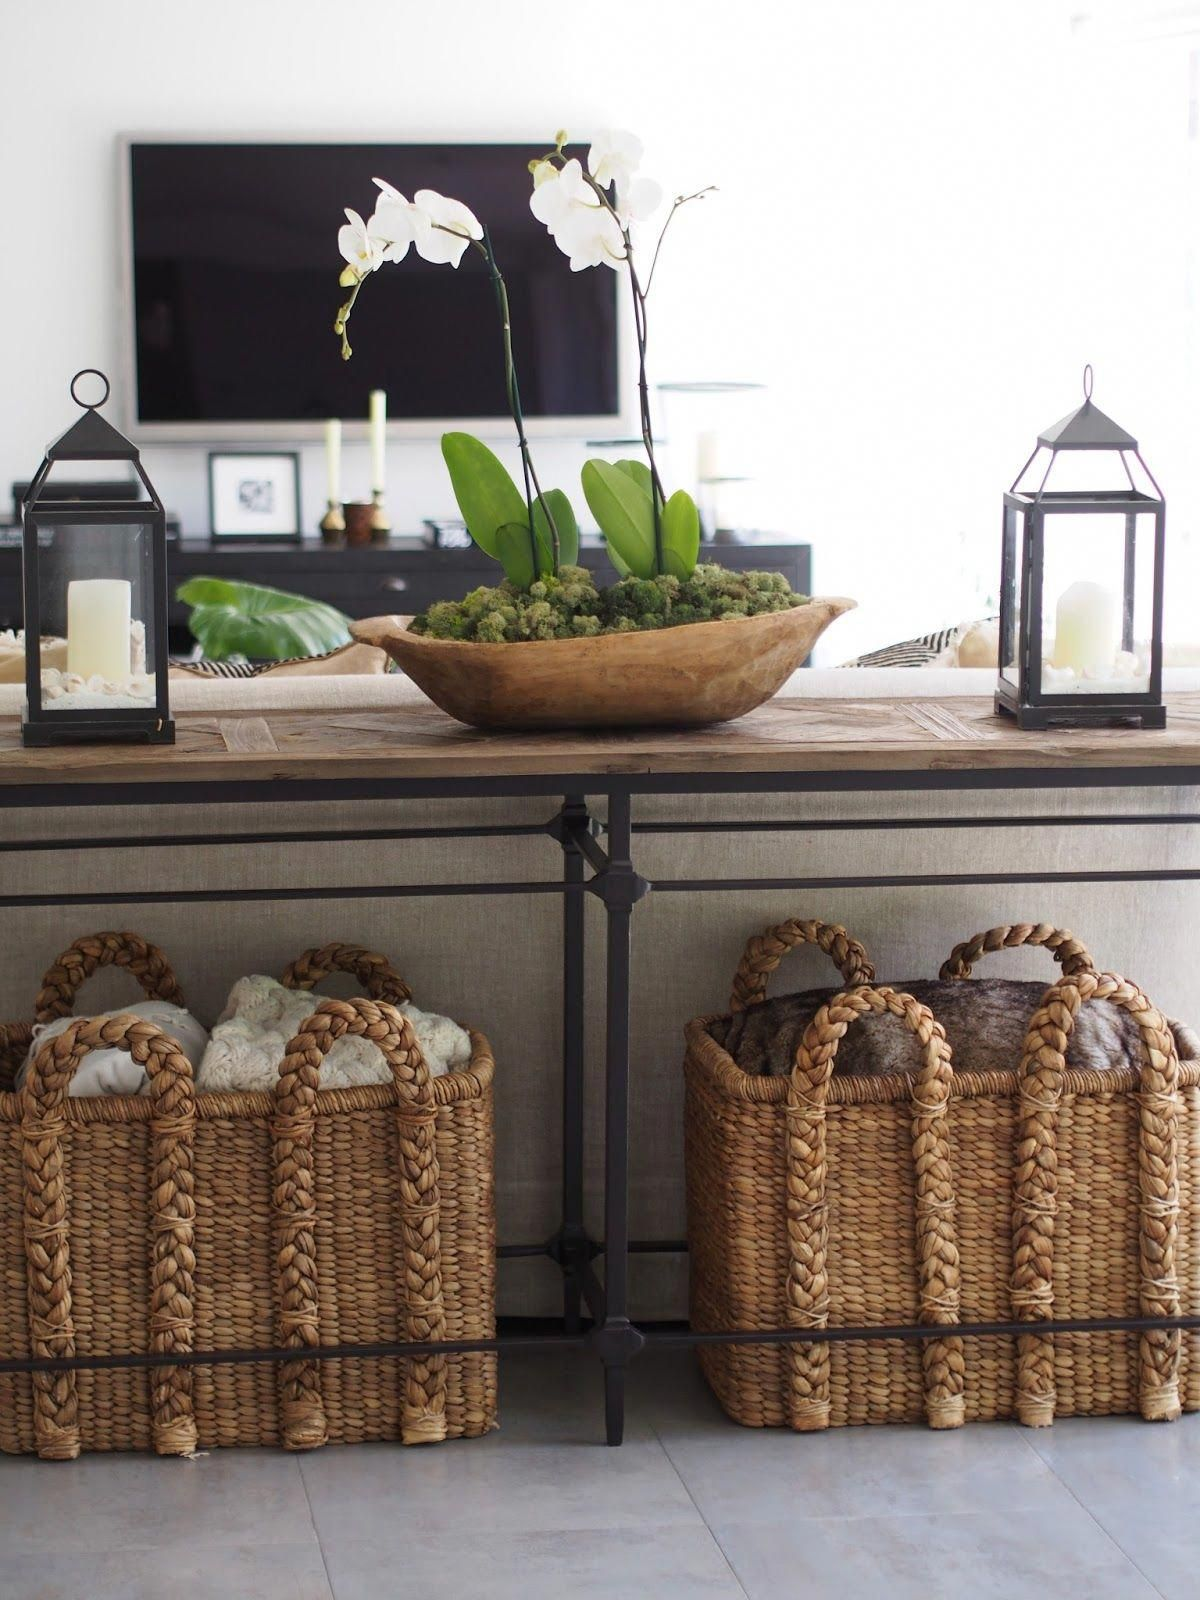 Put Some Sort Of Console Table With Lanterns Lamps Etc Behind Couch Baskets Under Are Cool Too Lantern Sofa Table Decor Couch Decor Console Table Decorating